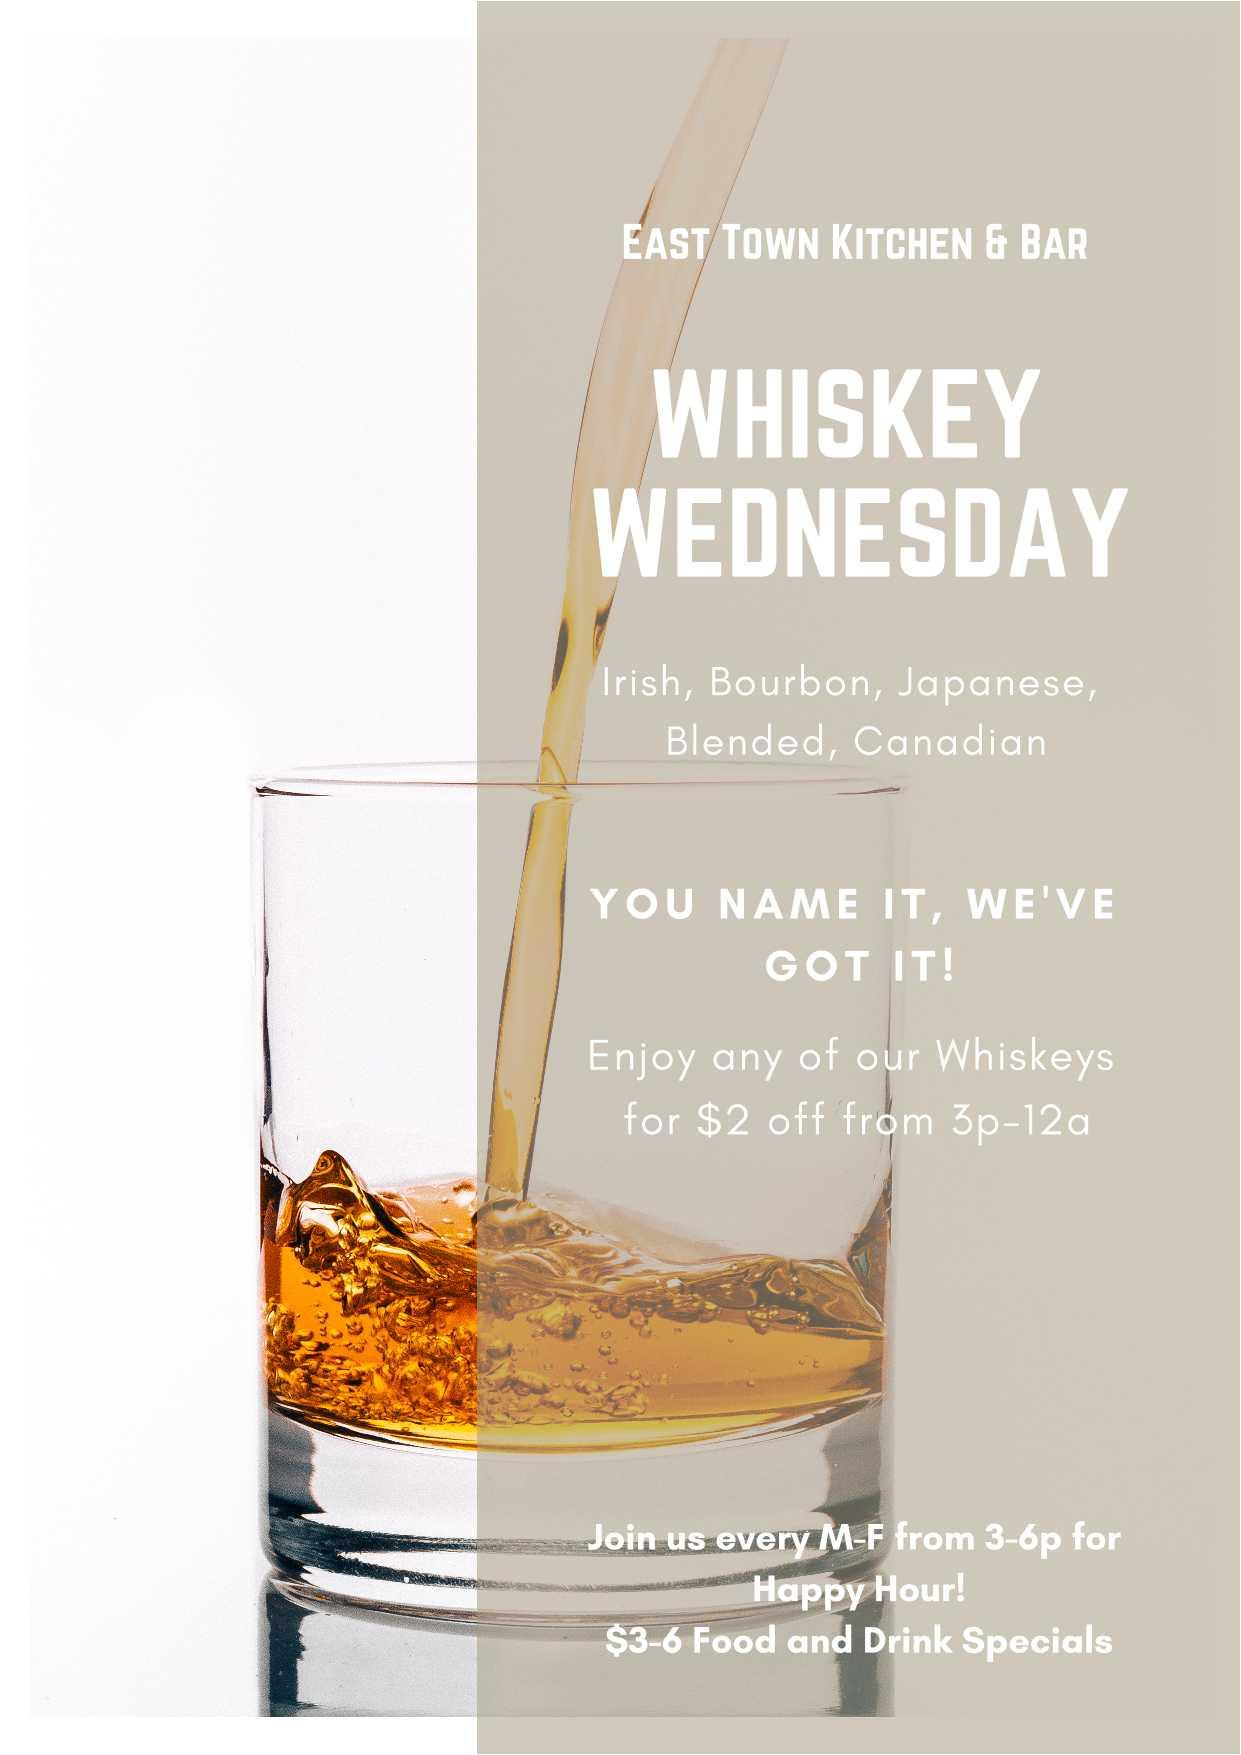 Whiskey Specials at East Town Kitchen & Bar on Wednesdays